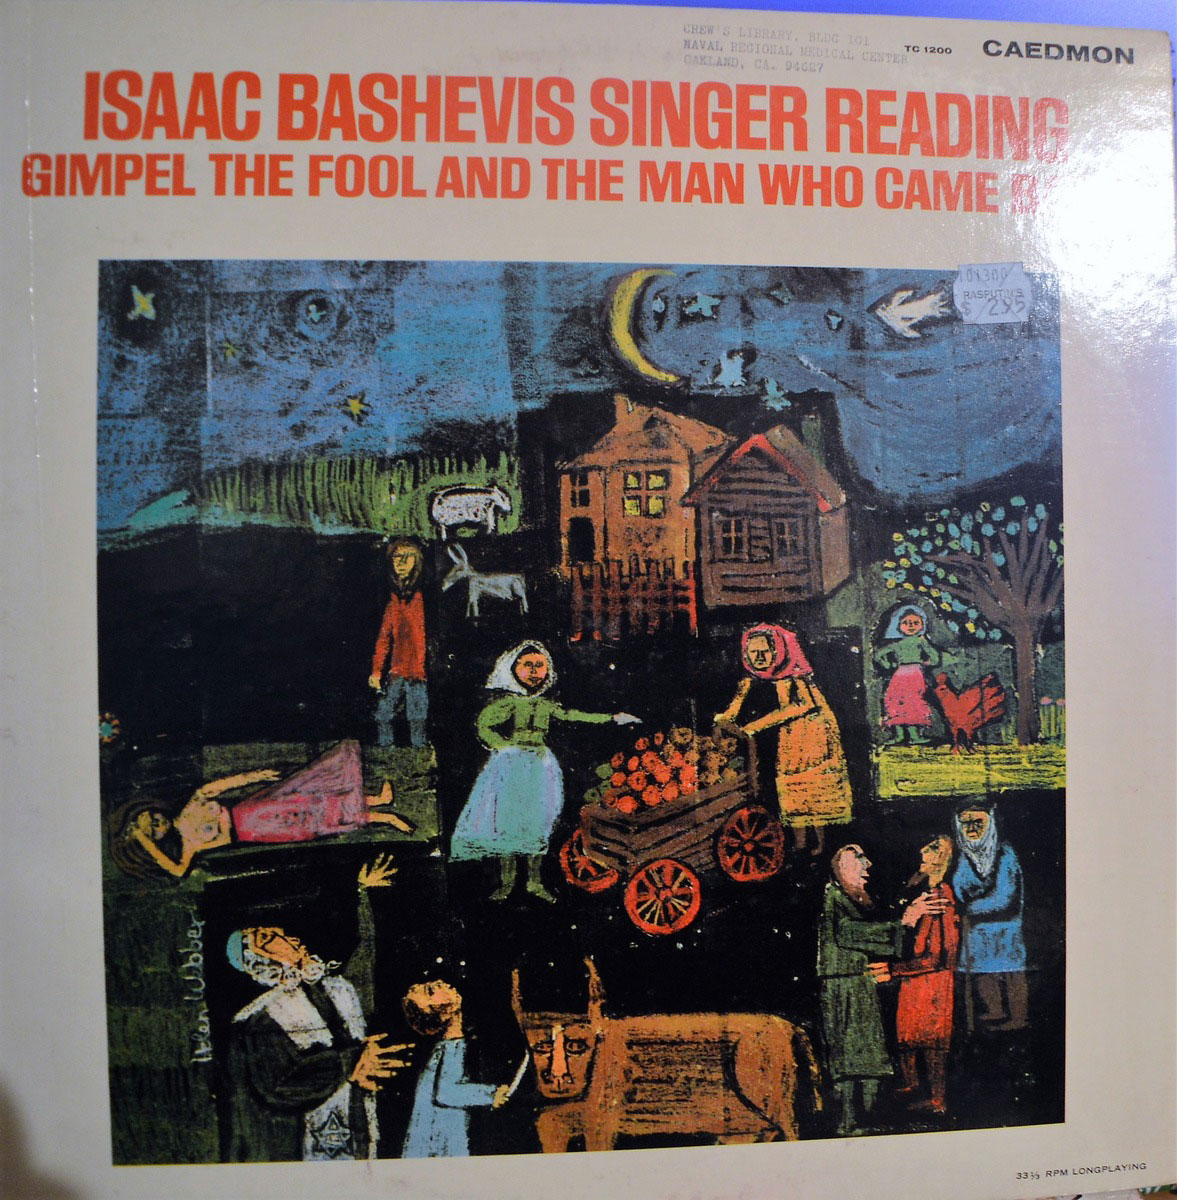 an overview of the character gimpel the fool by isaac bashevis singer